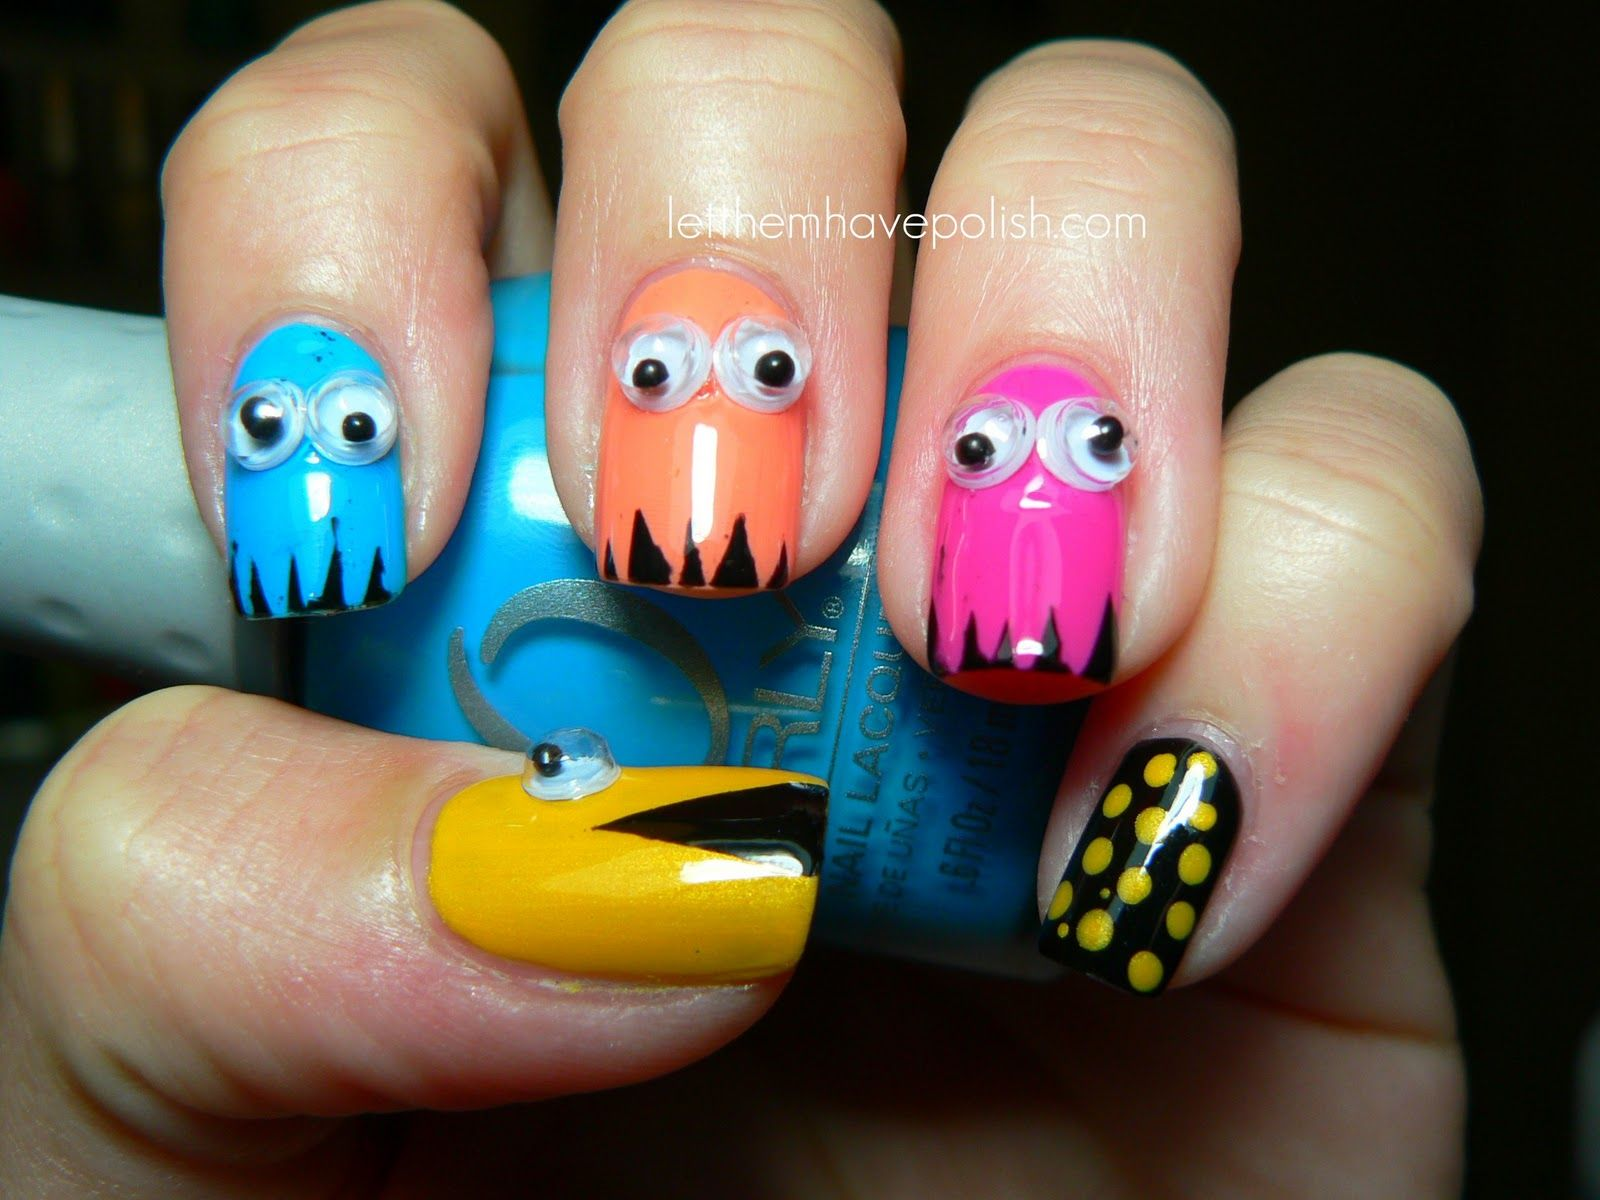 Let them have Polish!: Who doesn't love Pac Man?